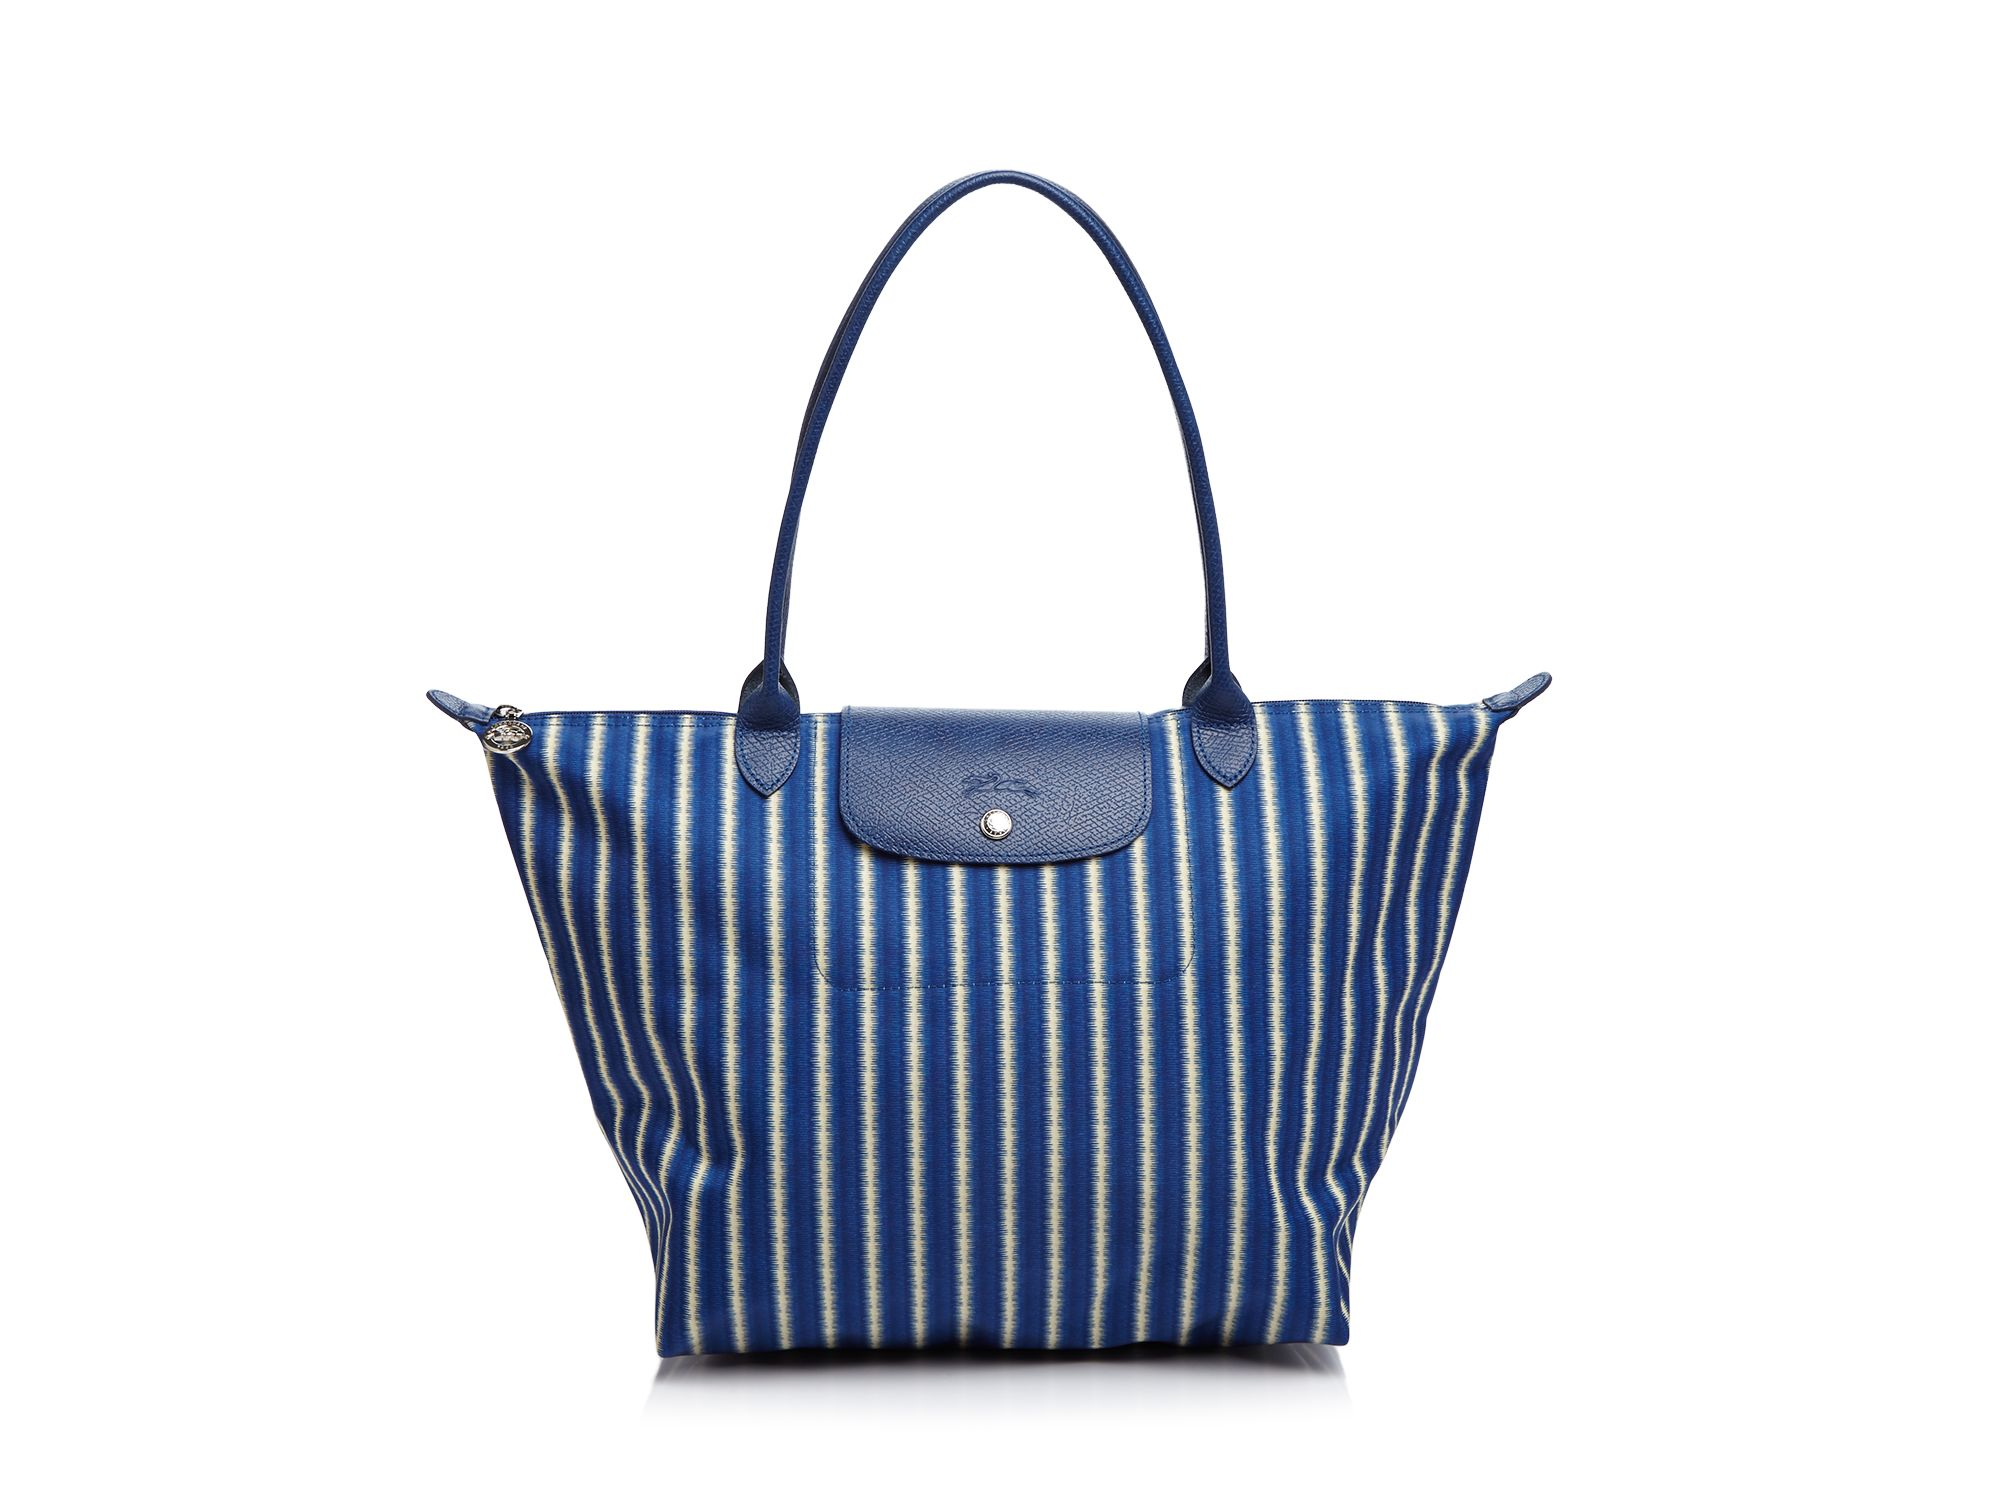 Longchamp Inspired Tote October 2017